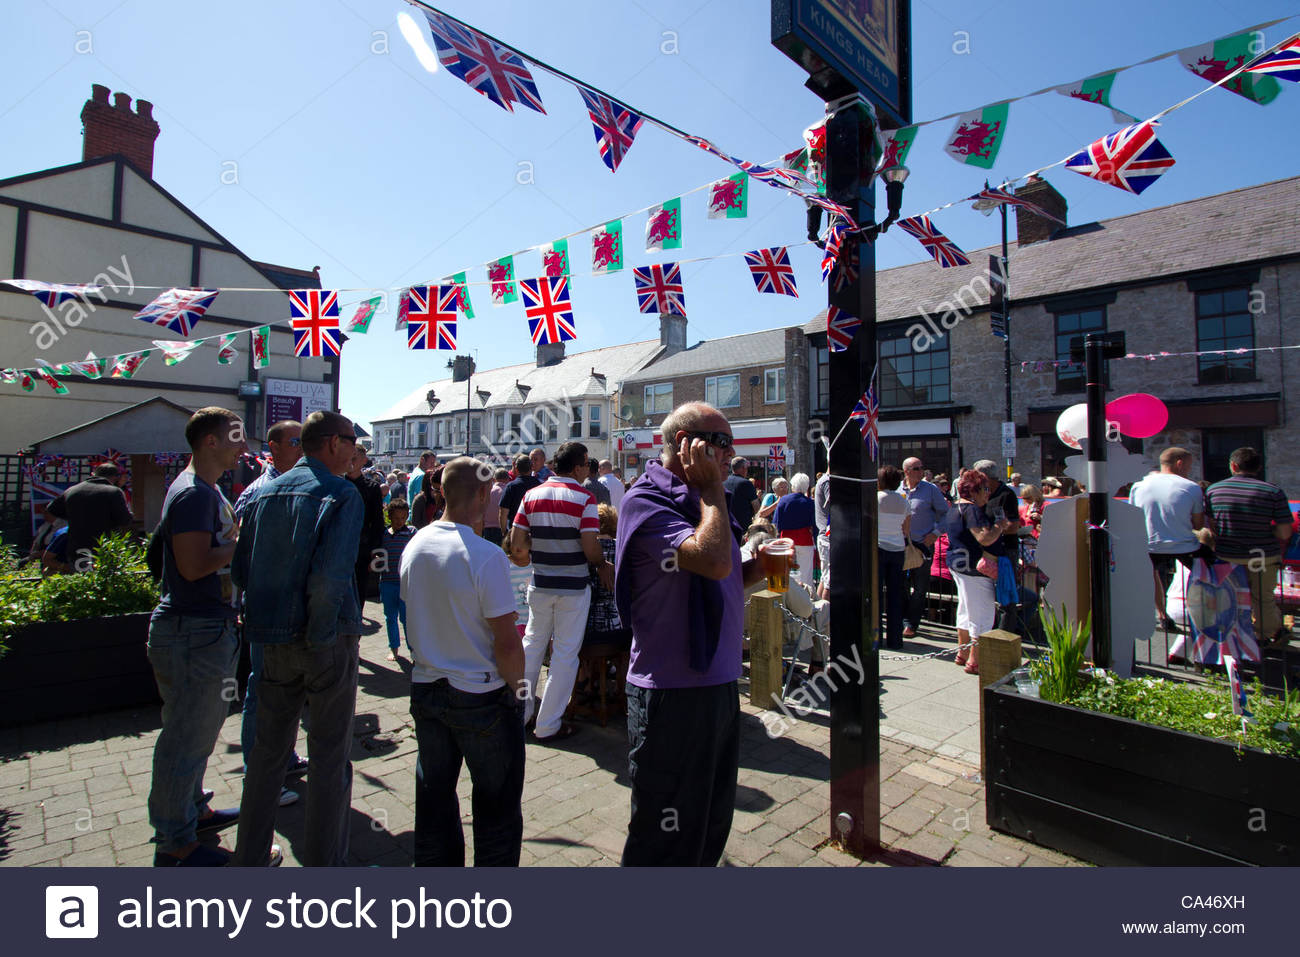 June 4th 2012, Rhuddlan, north Wales. A street party to celebrate the Queen's Diamond Jubilee goes ahead There - Stock Image